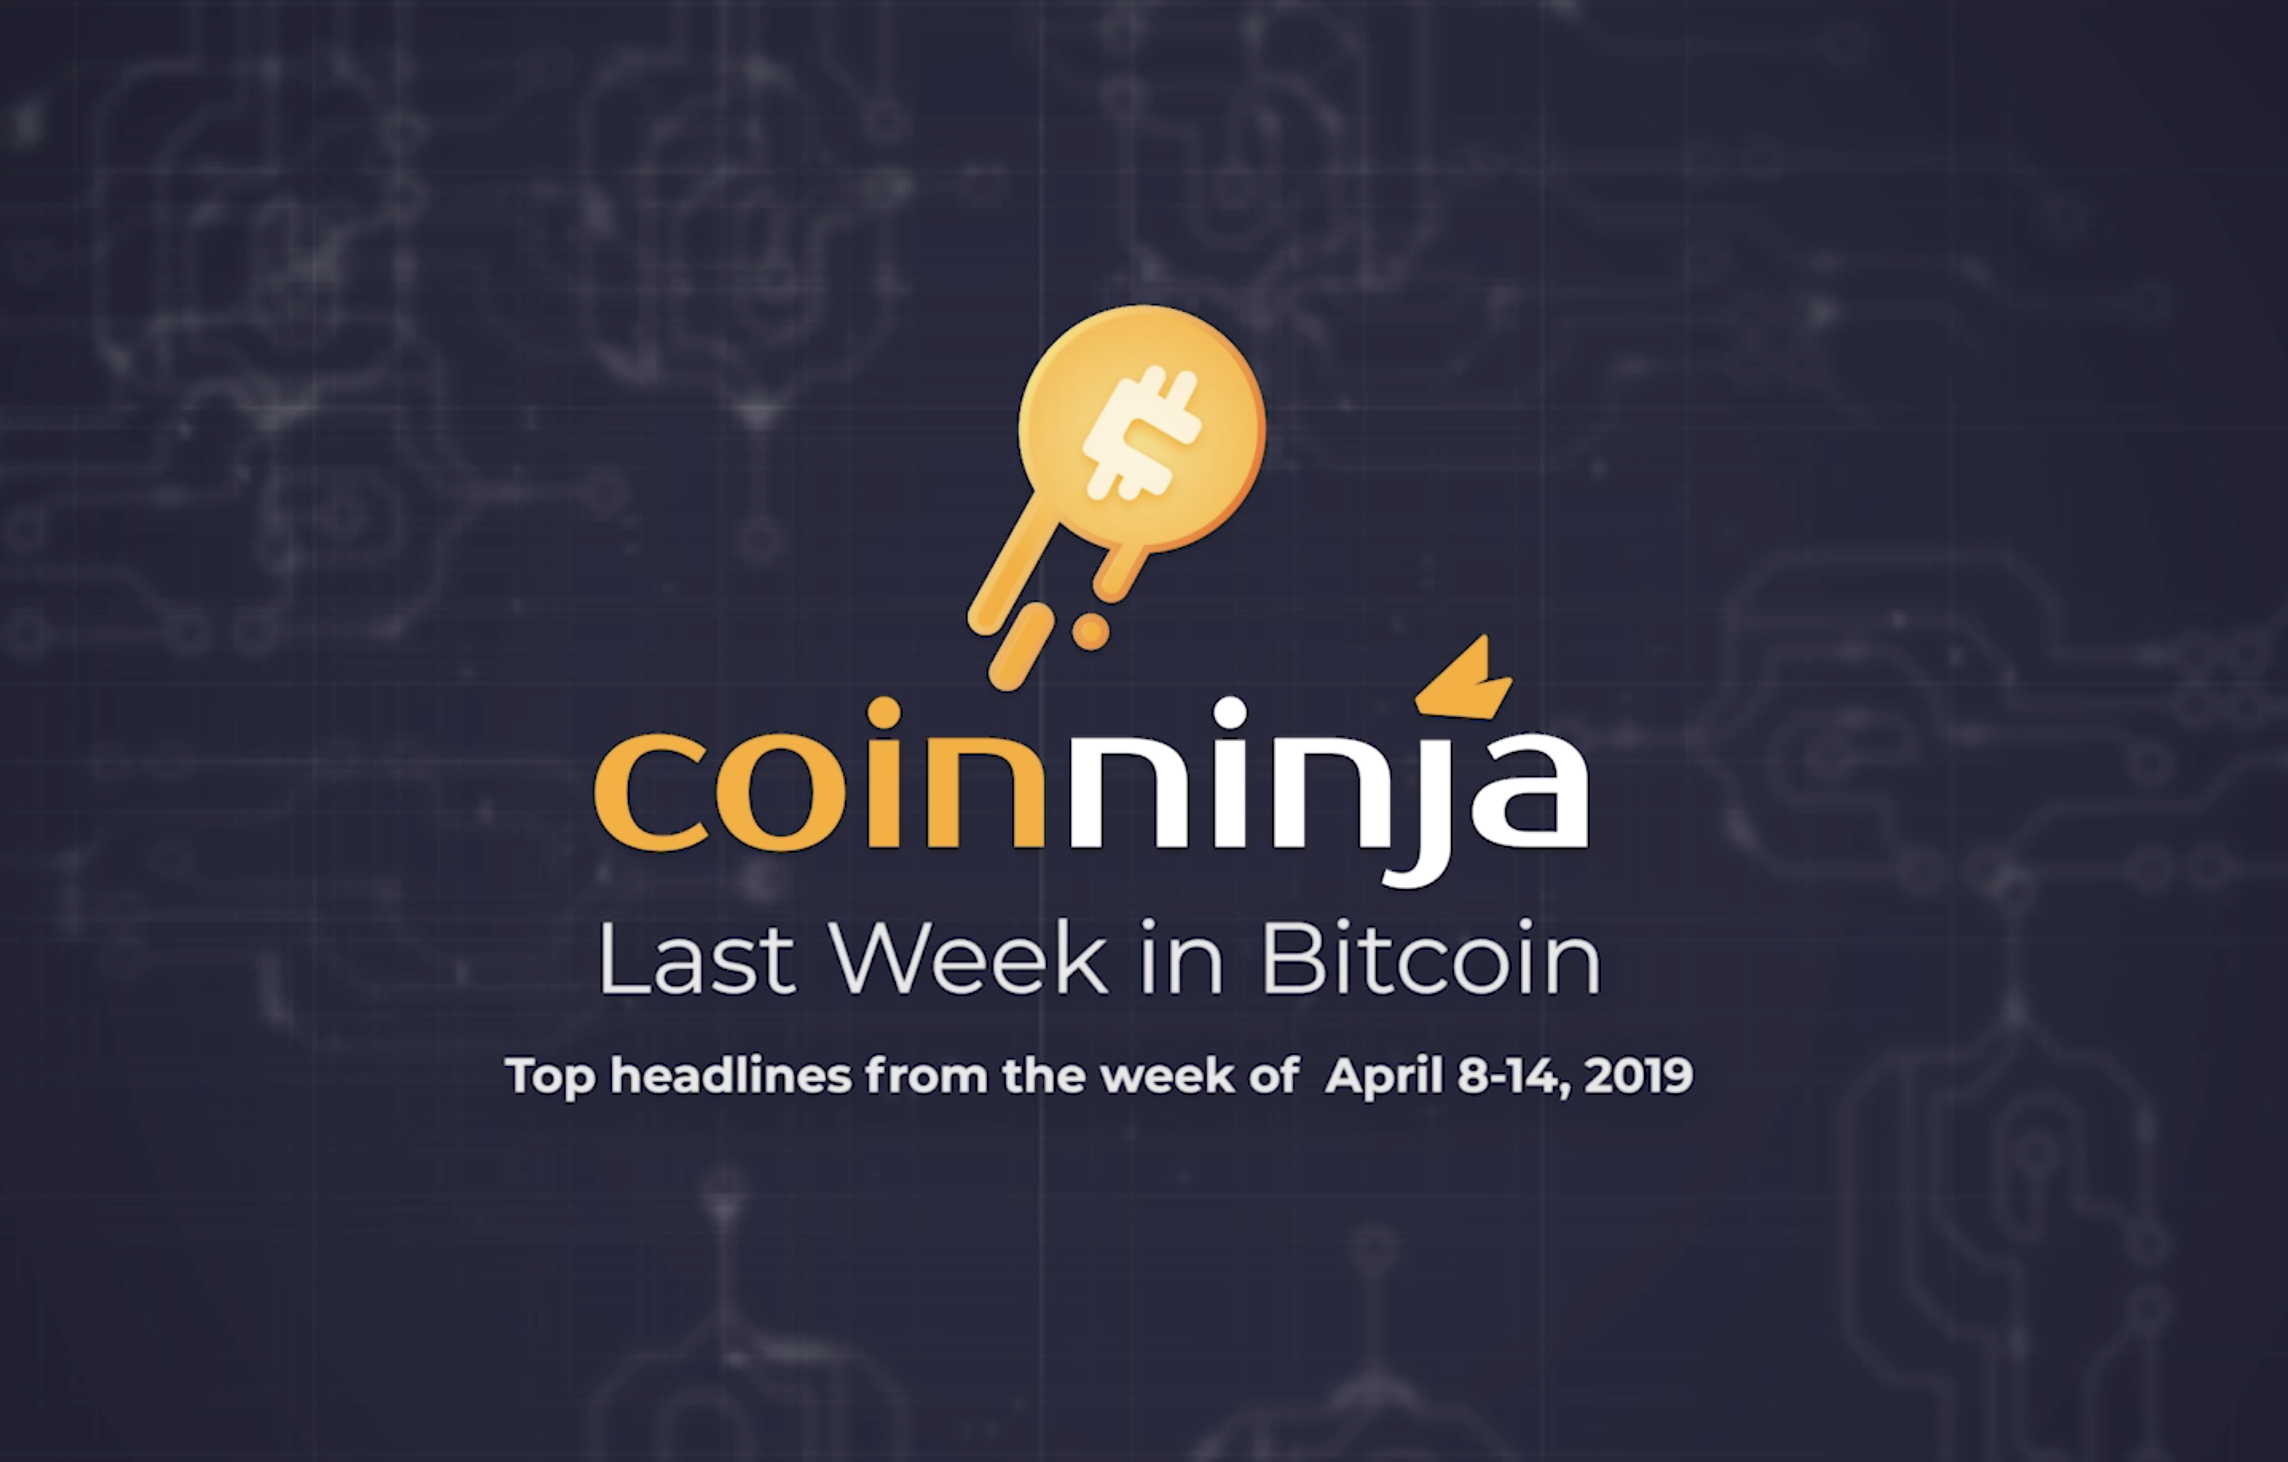 Last Week in Bitcoin: April 8 - 14